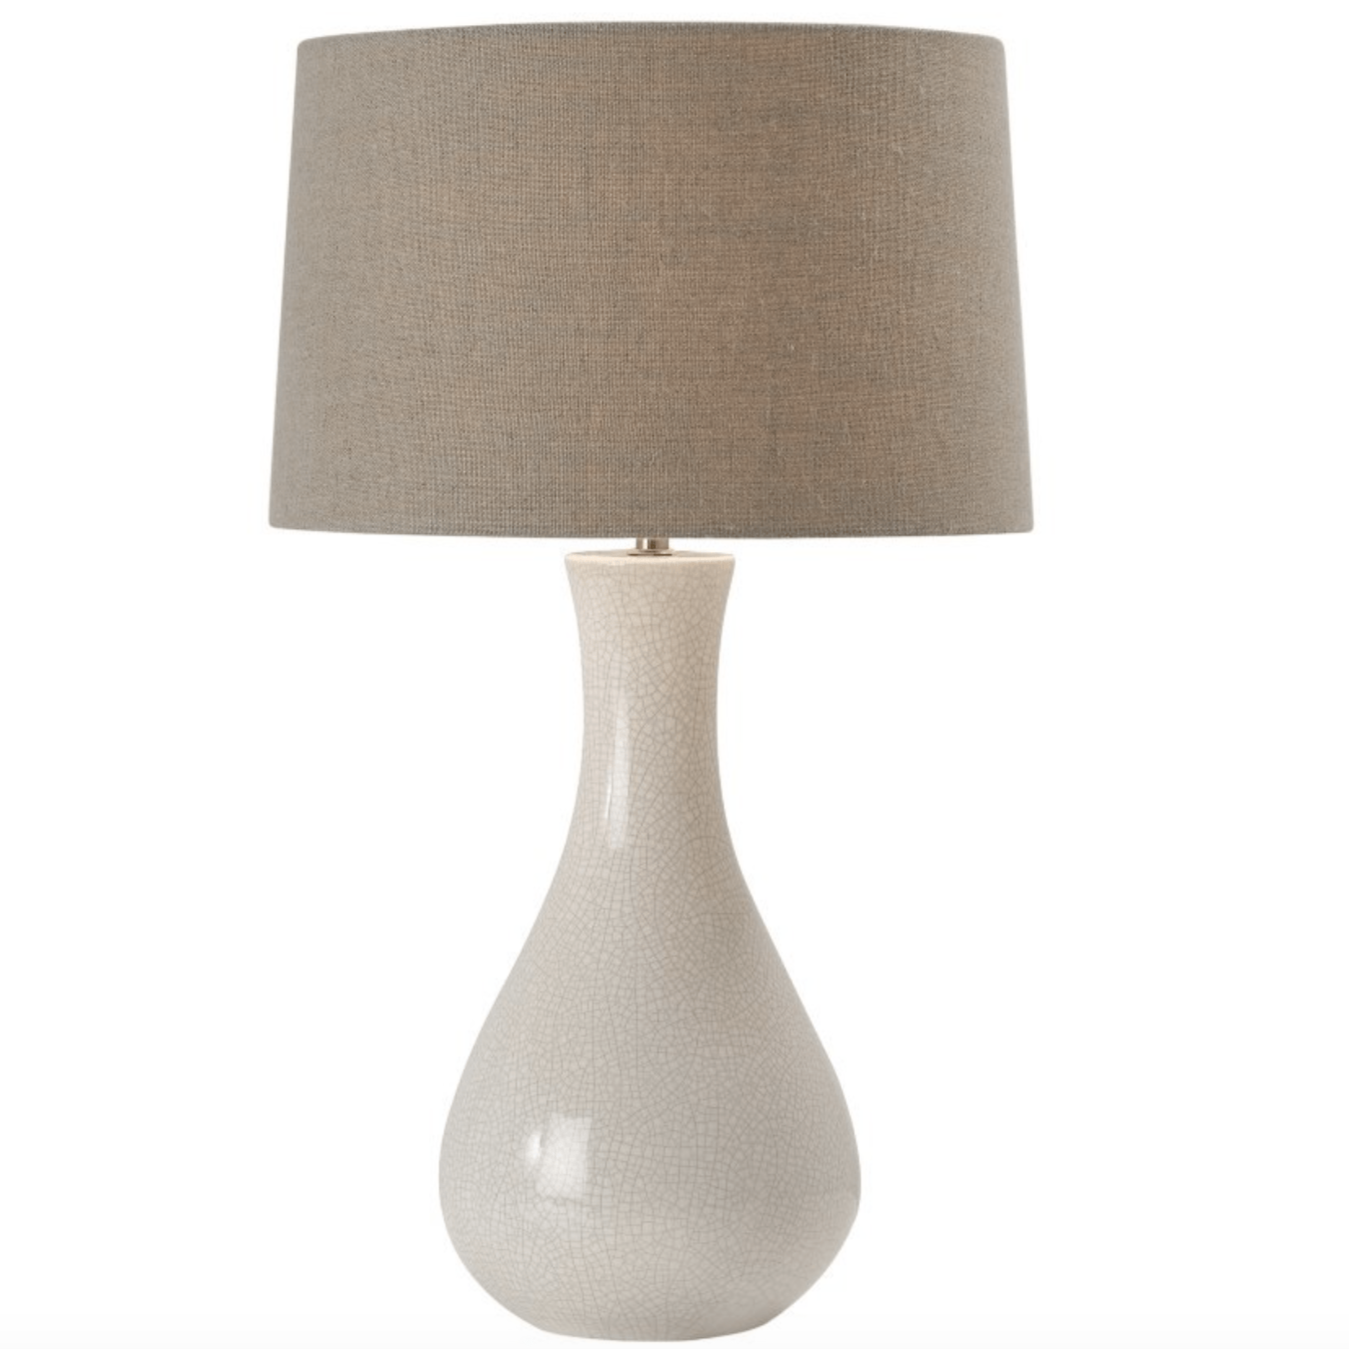 Bari Table Lamp lighting shops lighting stores LED lights  lighting designer